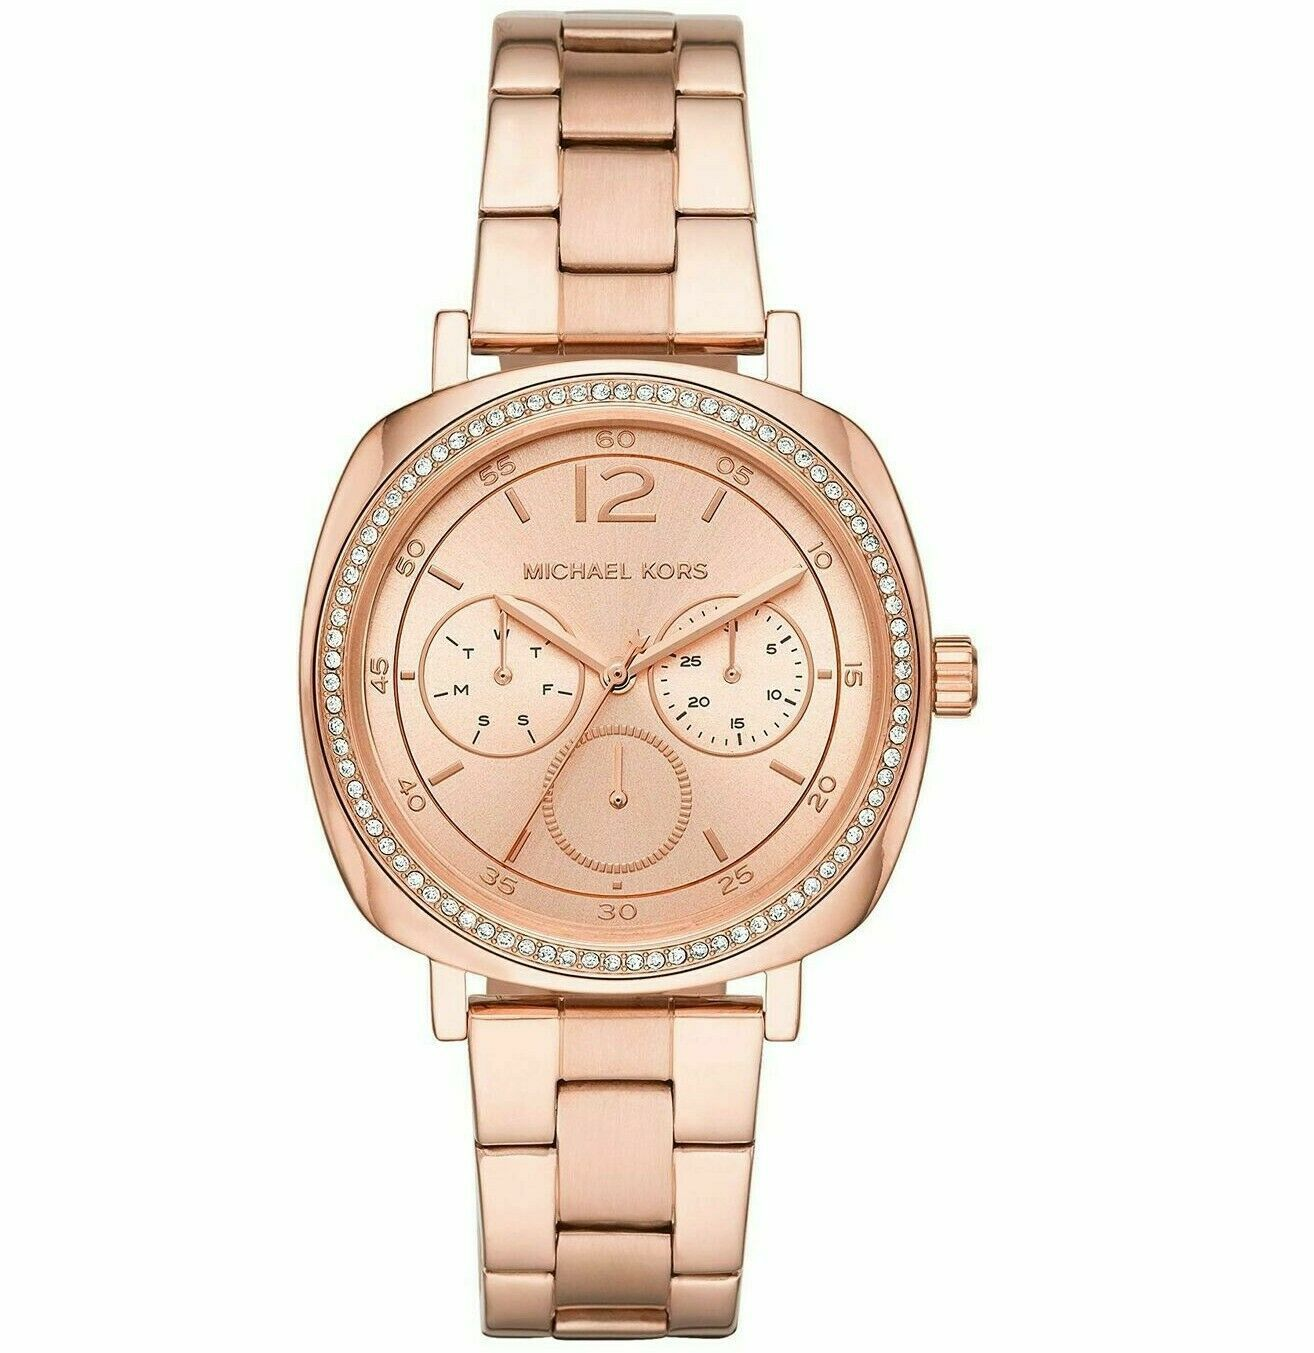 Primary image for Michael Kors Womens Nia Multifunction MK3957 Rose Gold Tone Watch  Brand New